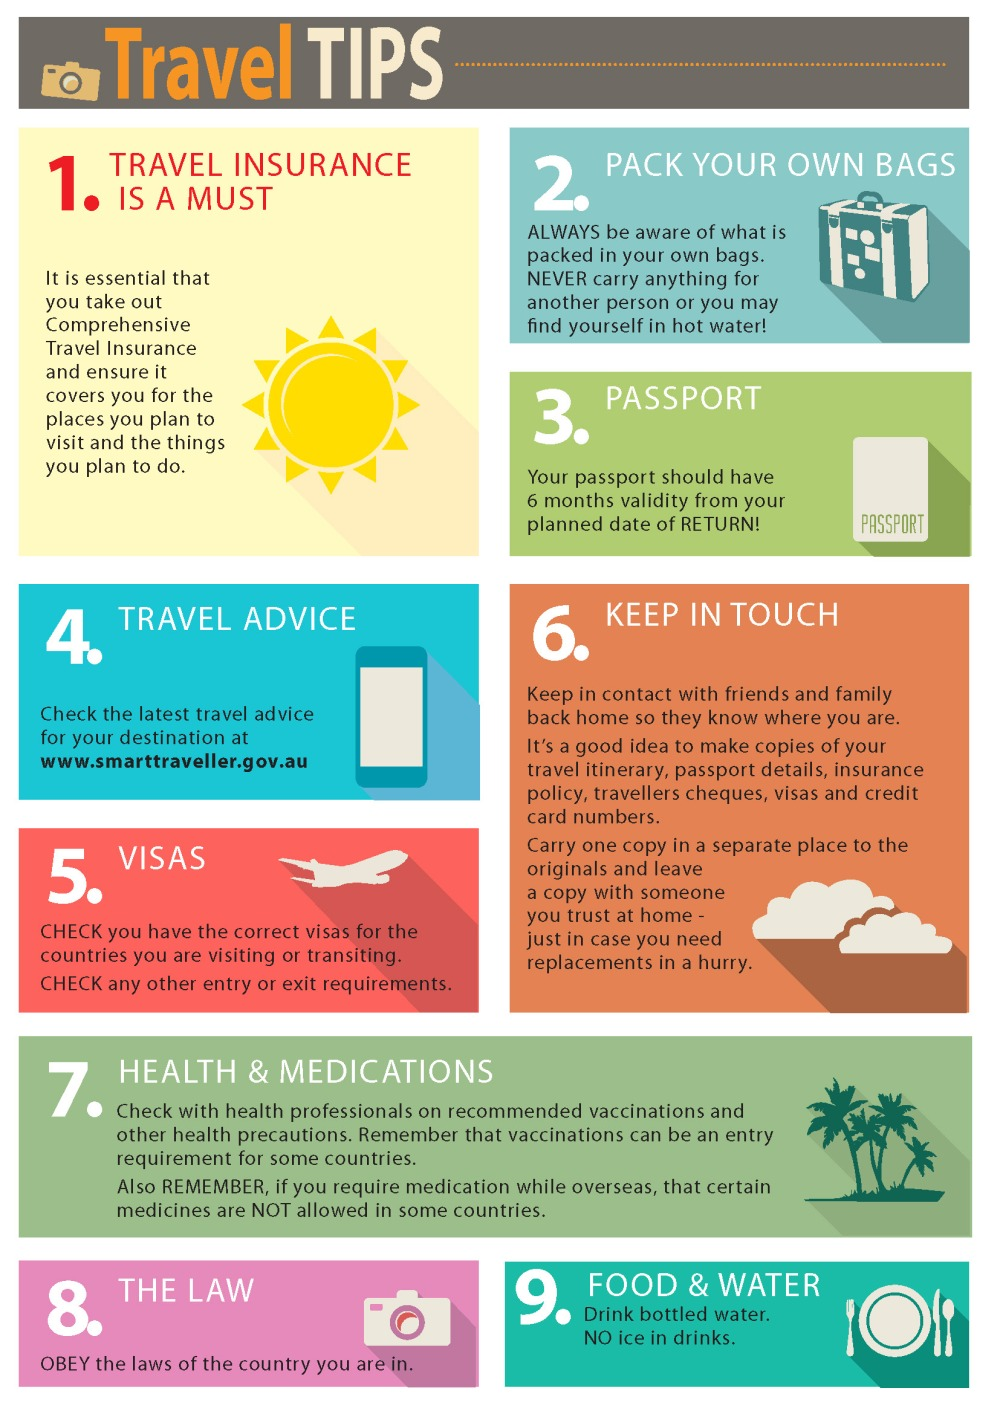 10 Quick Travel Tips